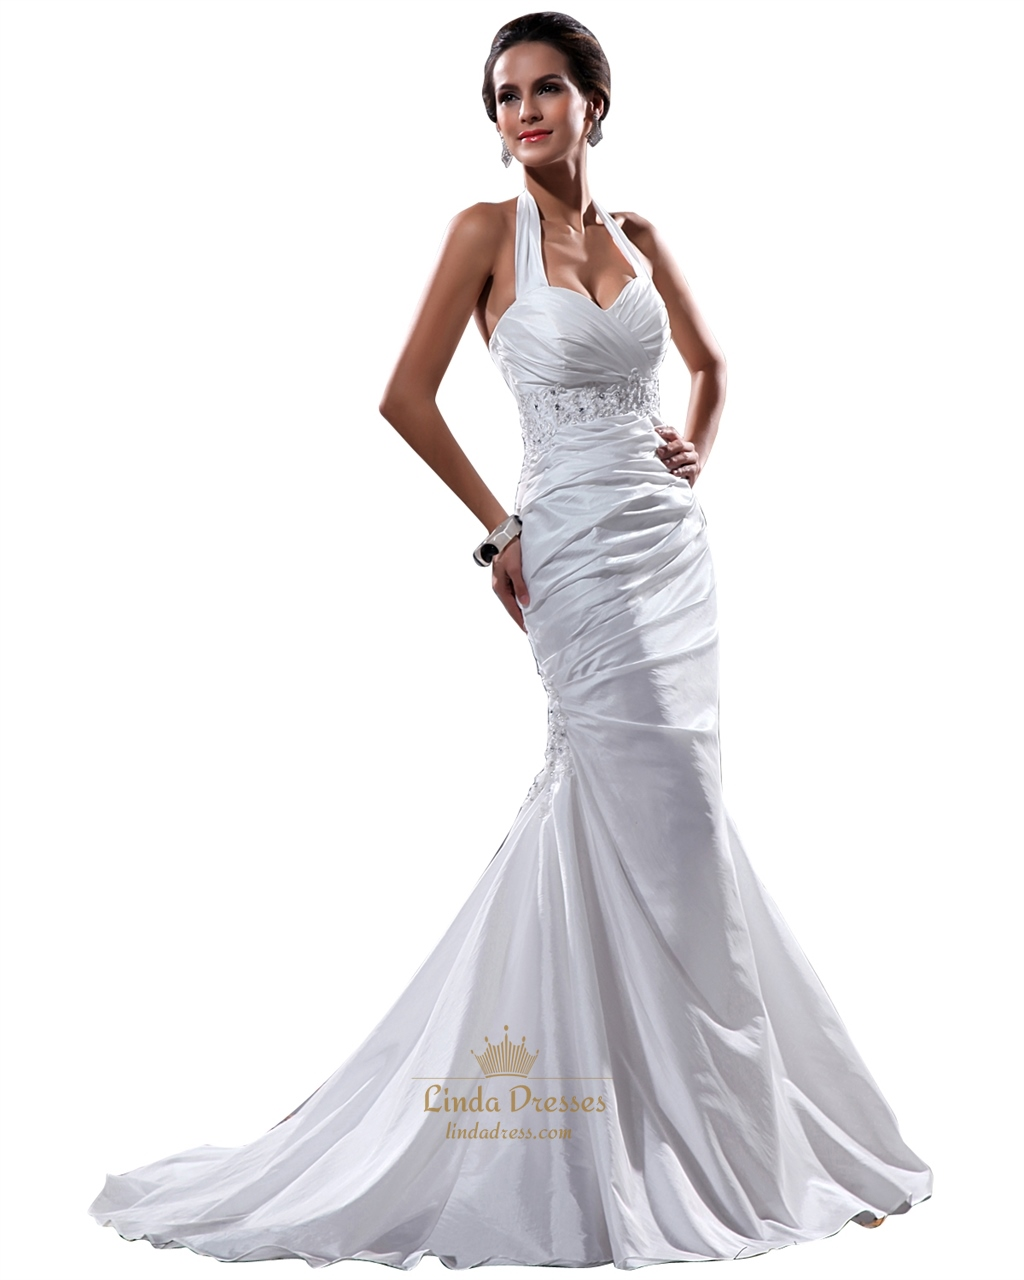 White Halter Neck Taffeta Mermaid Wedding Dress With Beaded Waistband